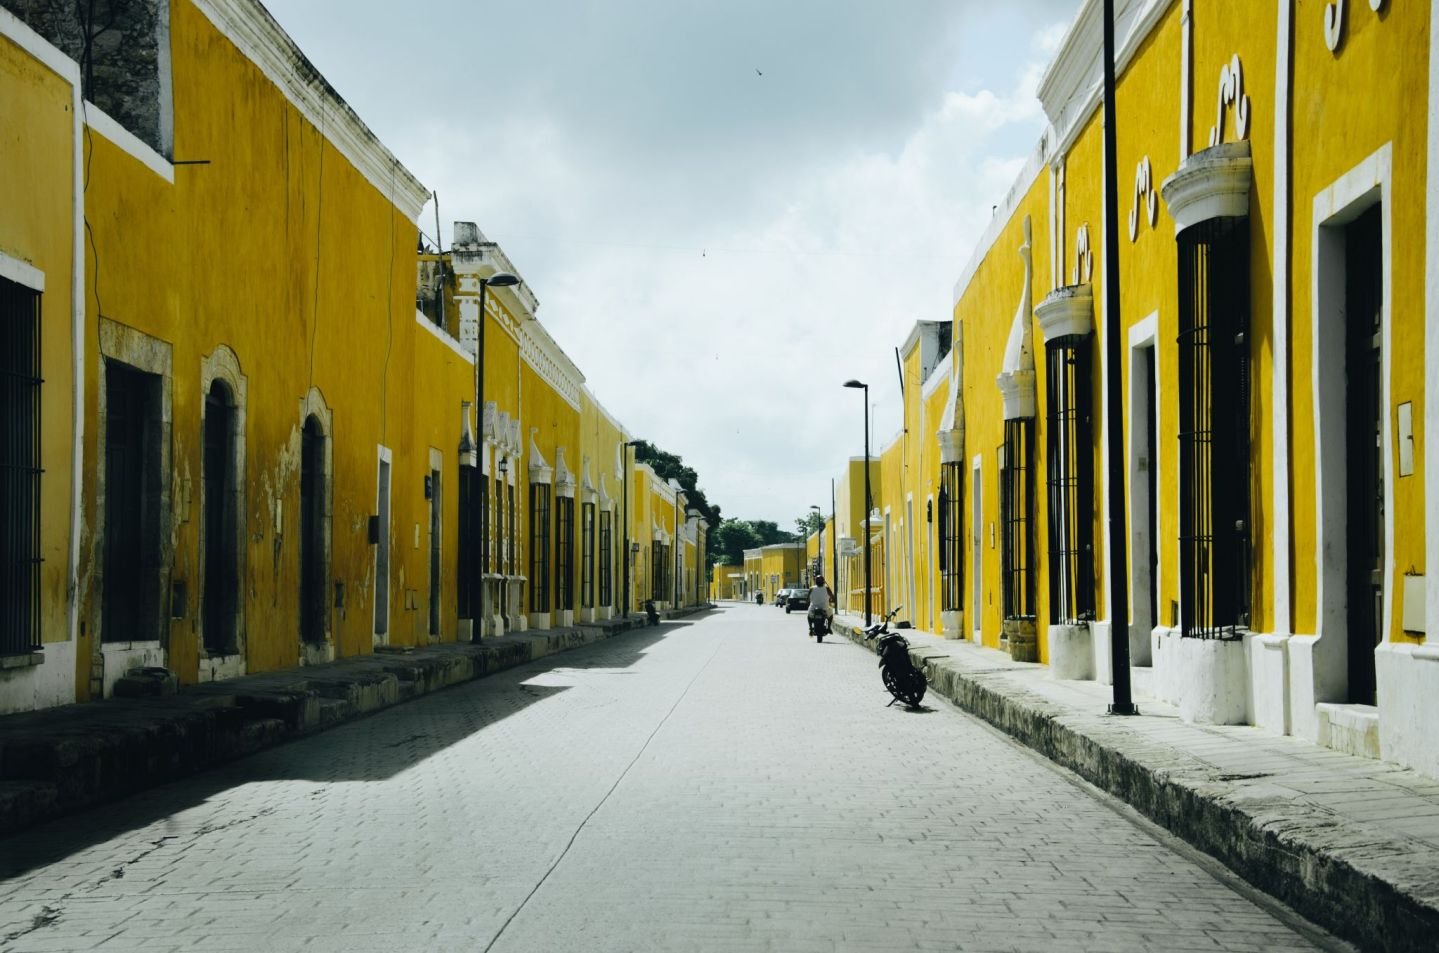 Izamal, Mexico is one of the world's most colourful cities